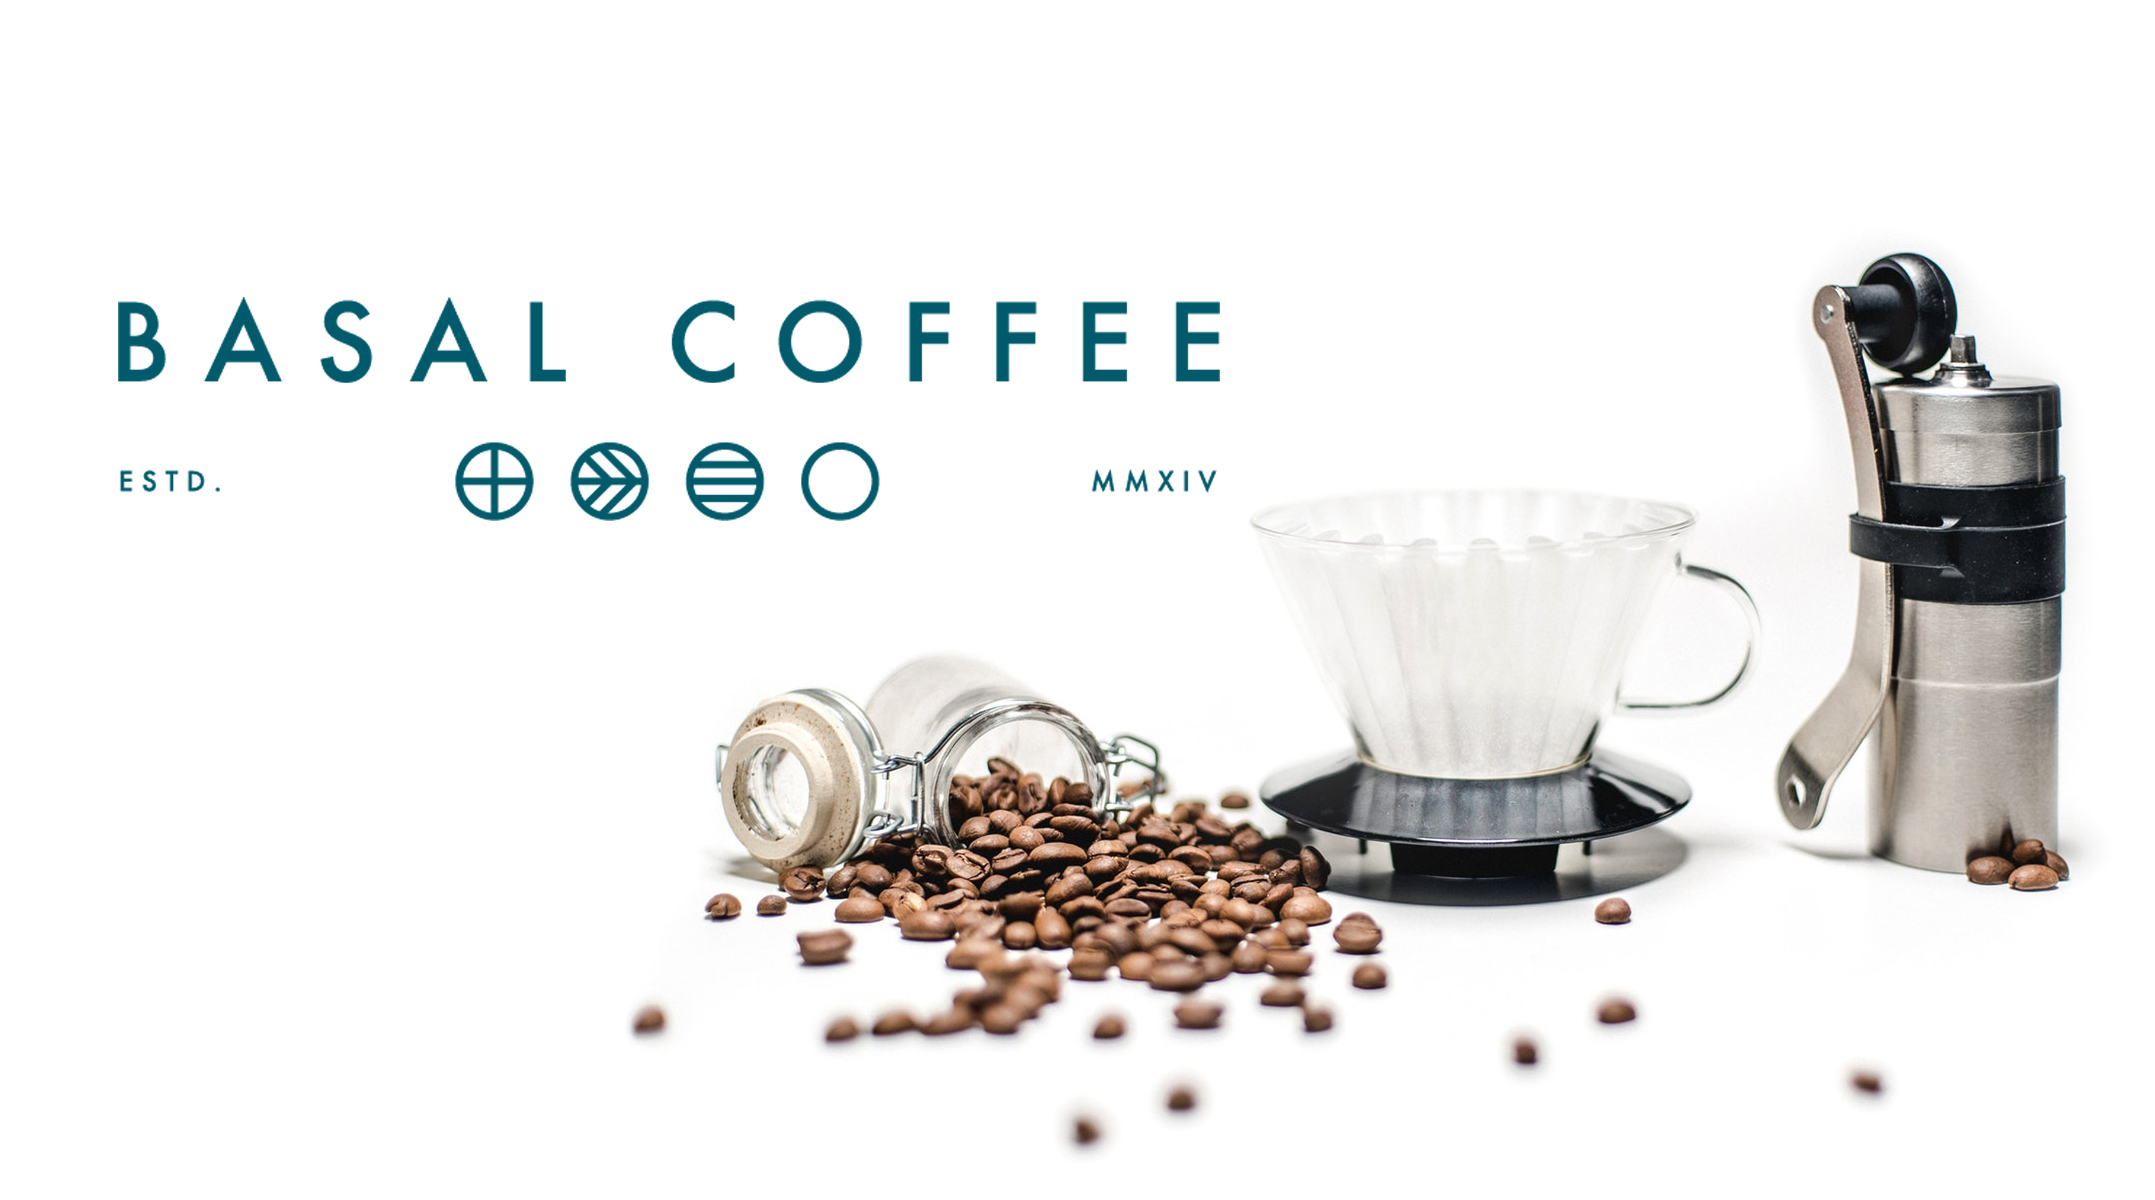 Where to Find: Basal Coffee